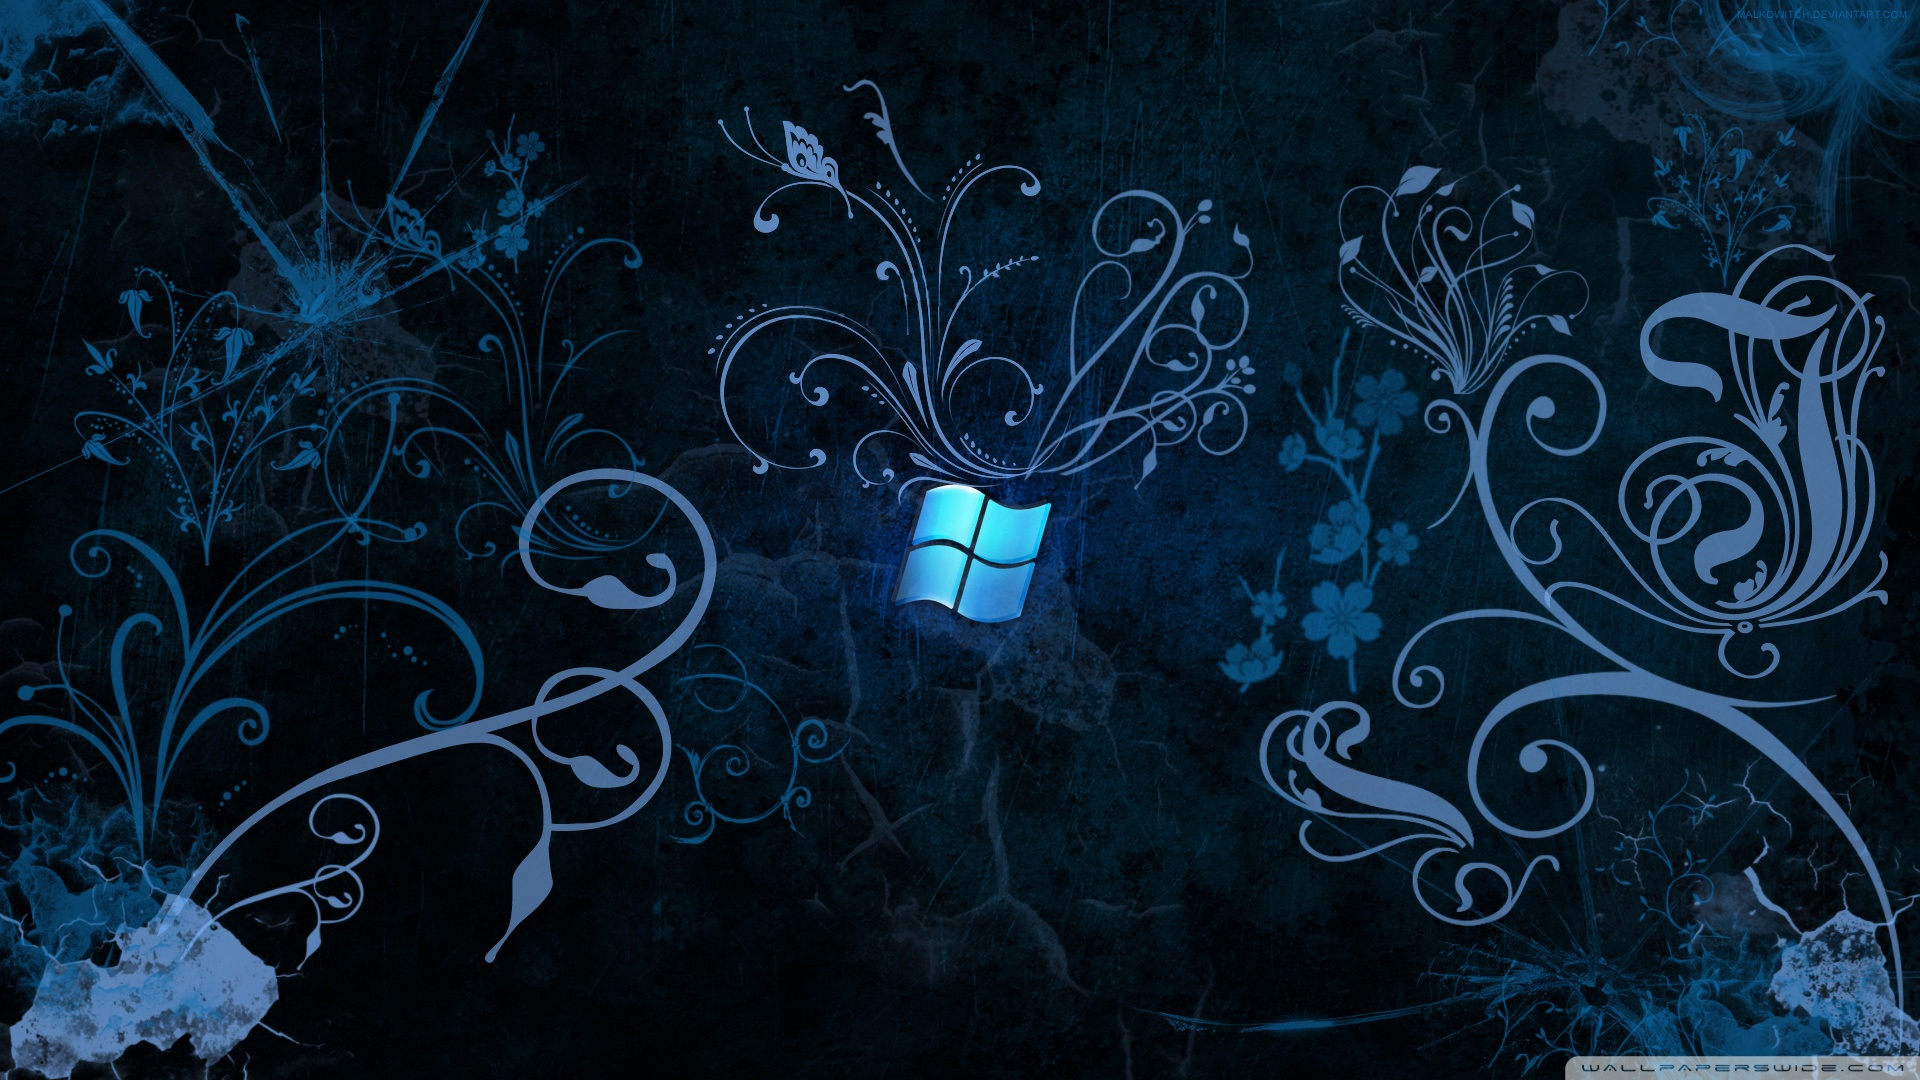 Wallpaper For Windows 8.1